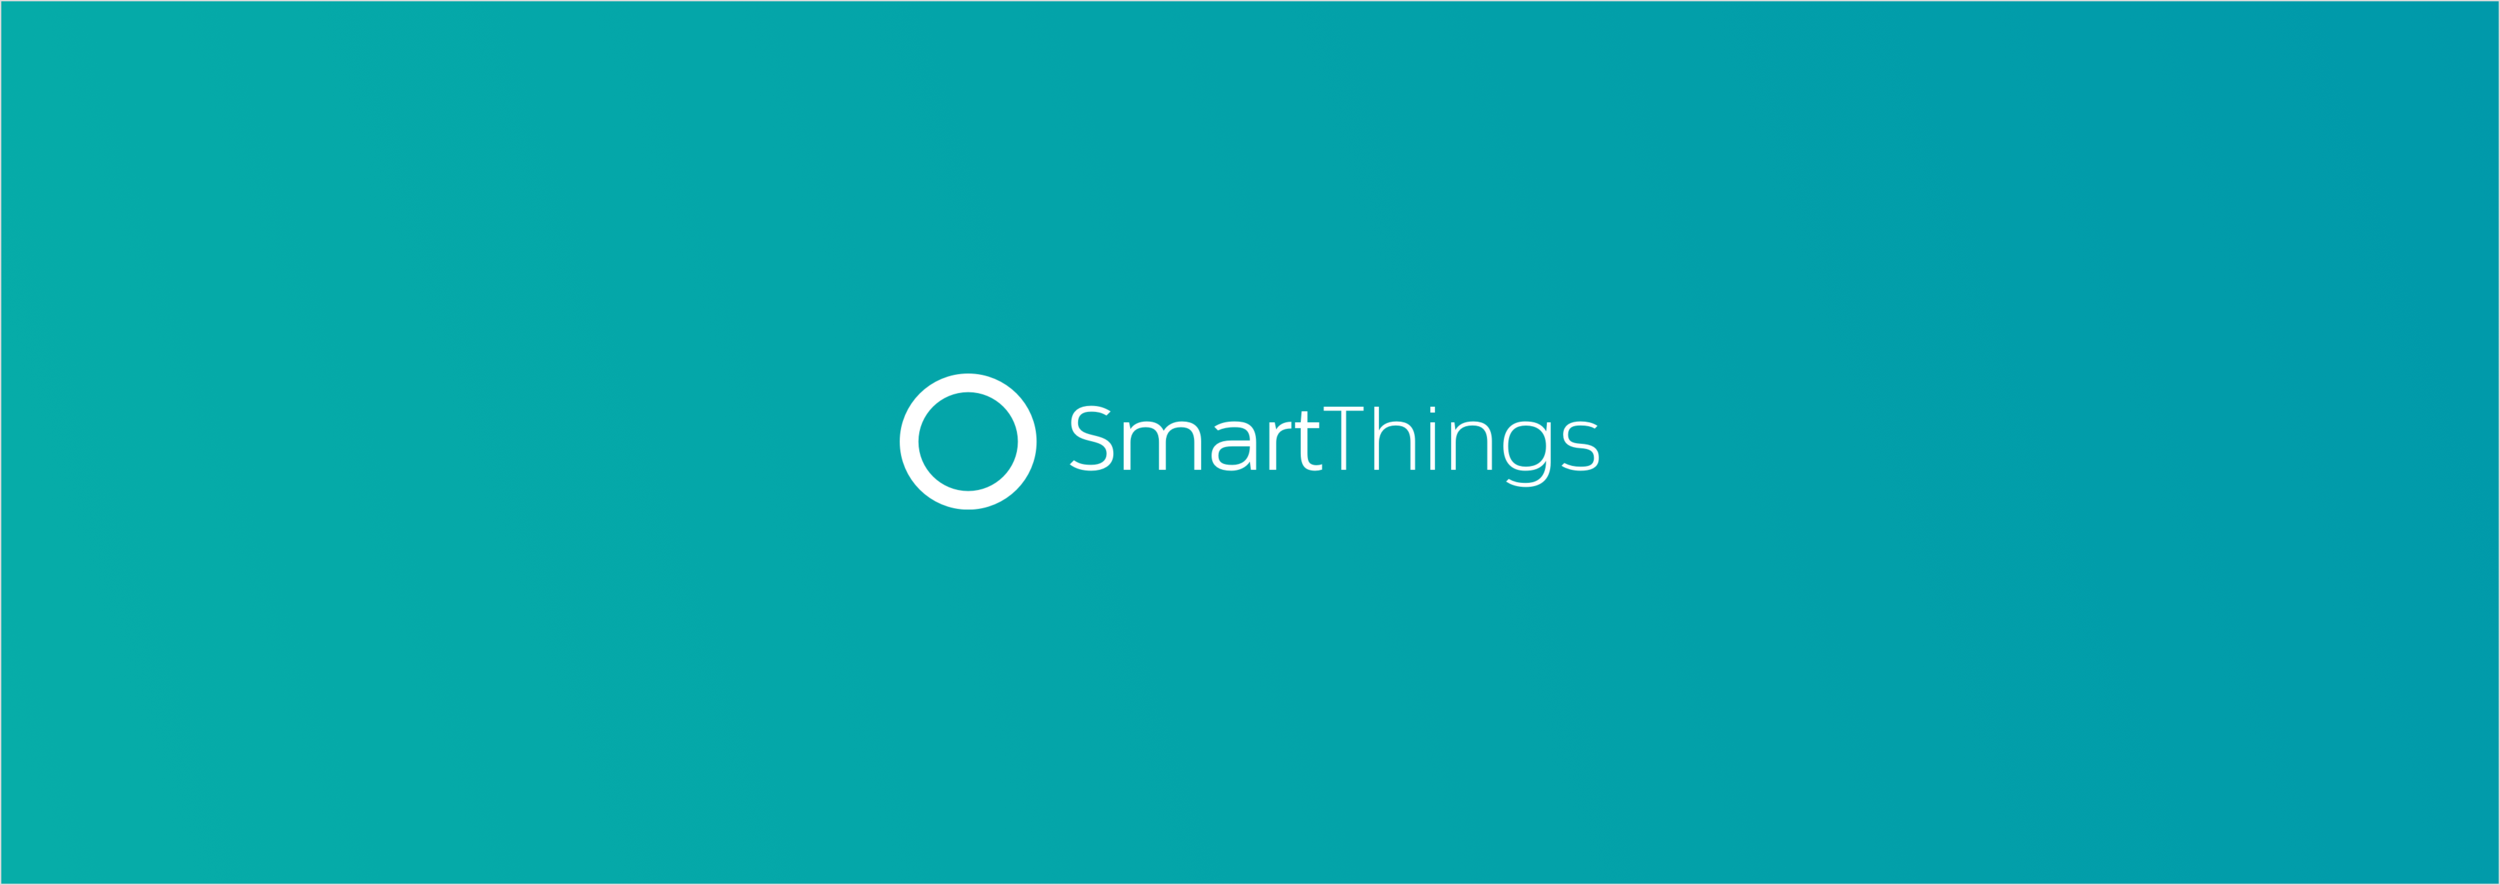 projectcover-smartthings@2x.png